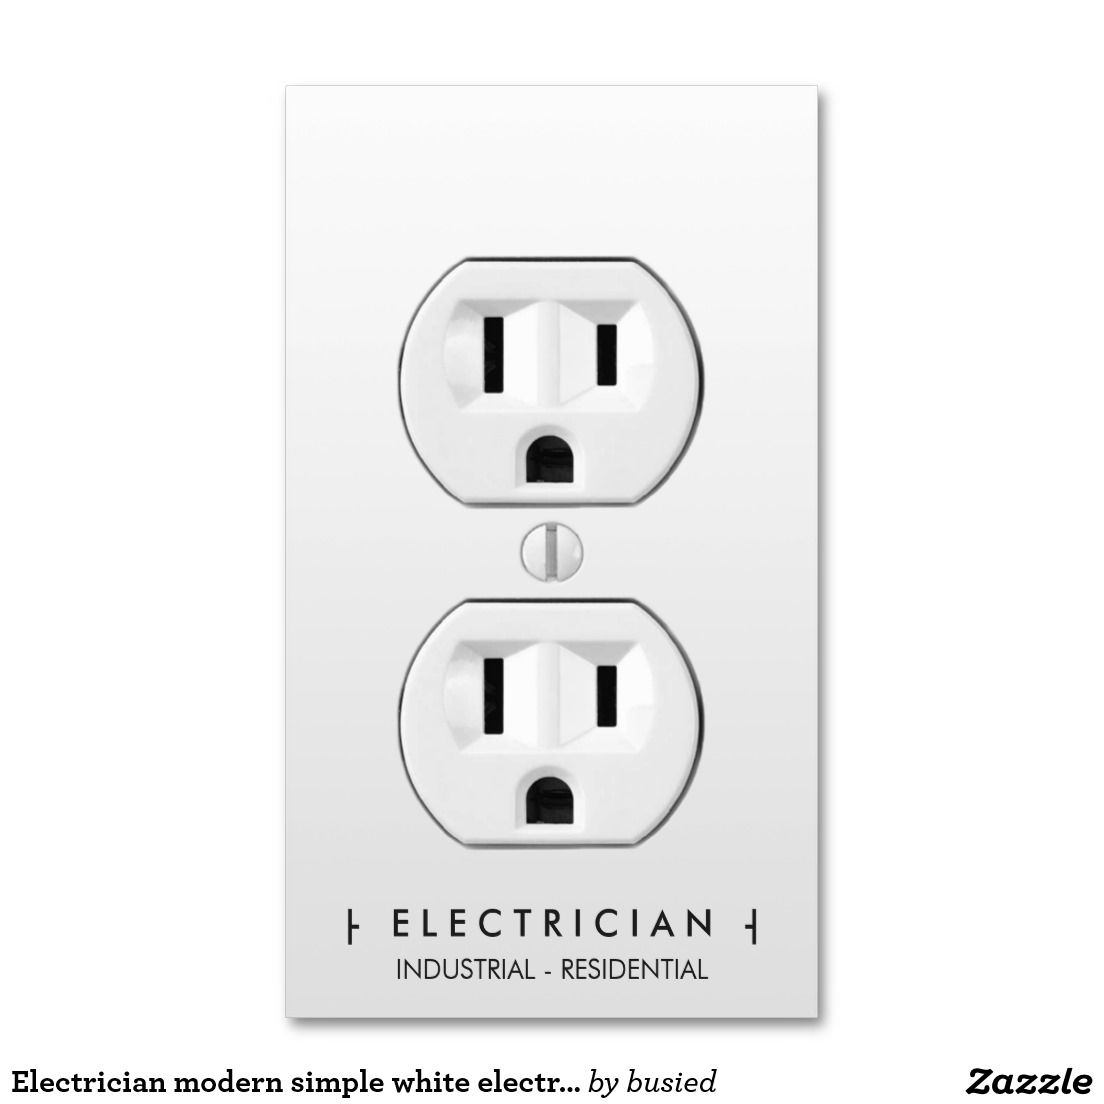 Electrician modern simple white electrical outlet double sided electrician modern simple white electrical outlet double sided standard business cards pack of 100 magicingreecefo Images